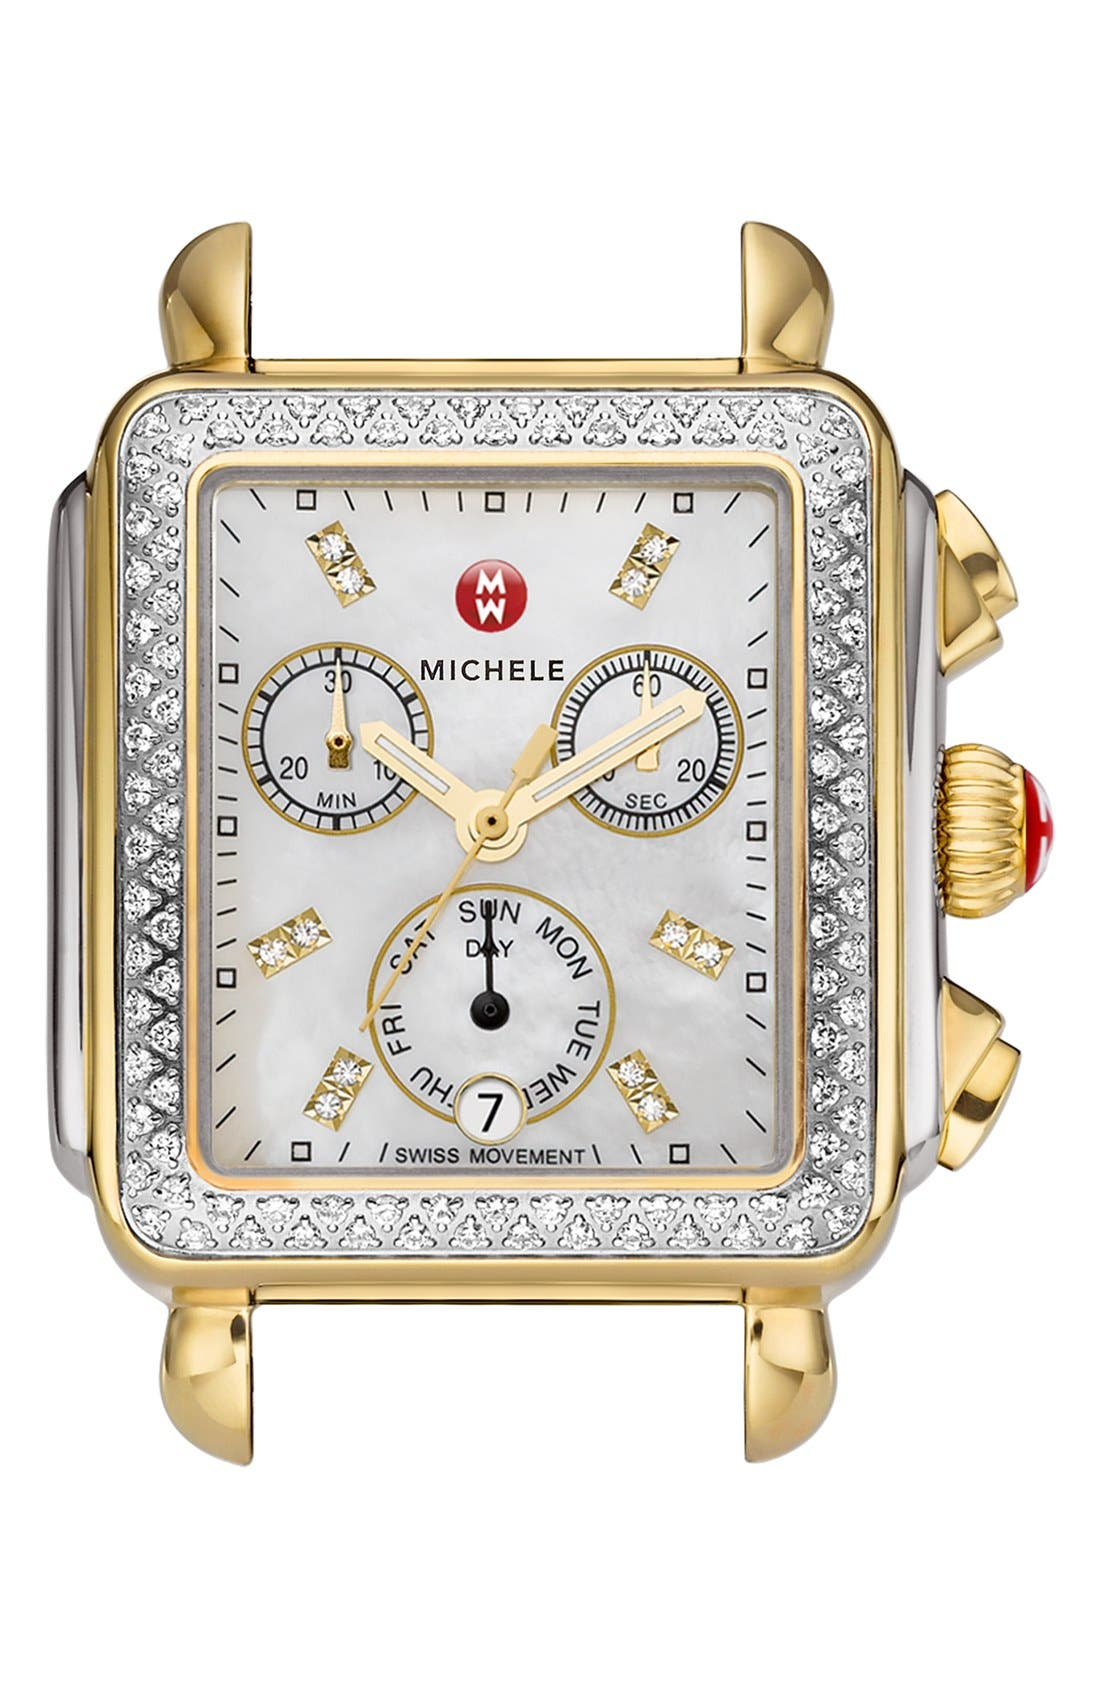 Main Image - MICHELE Deco Diamond Diamond Dial Two-Tone Watch Case, 33mm x 35mm